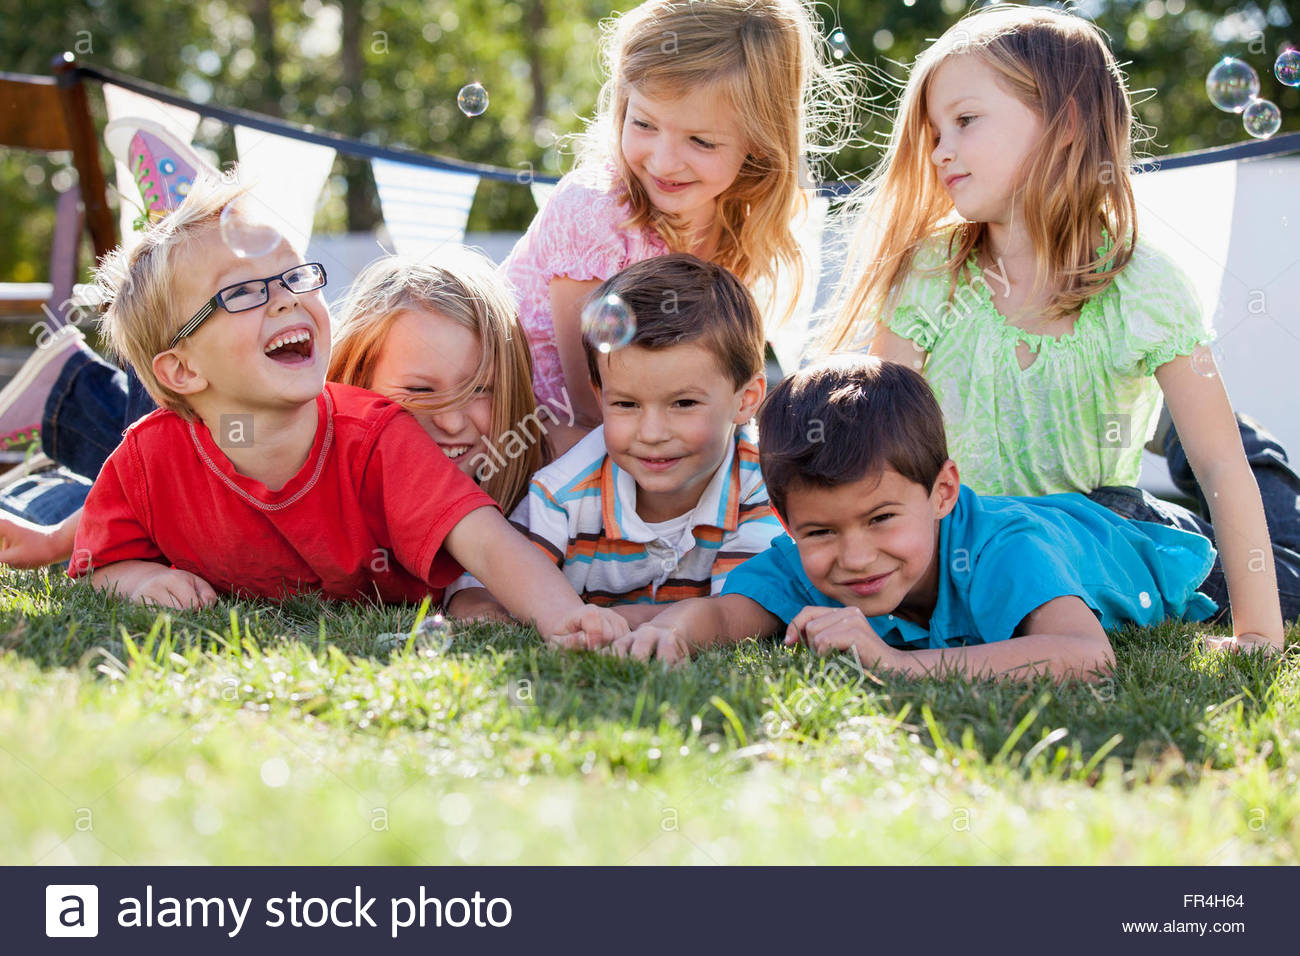 Cousins catching bubbles as they lie on the grass. - Stock Image